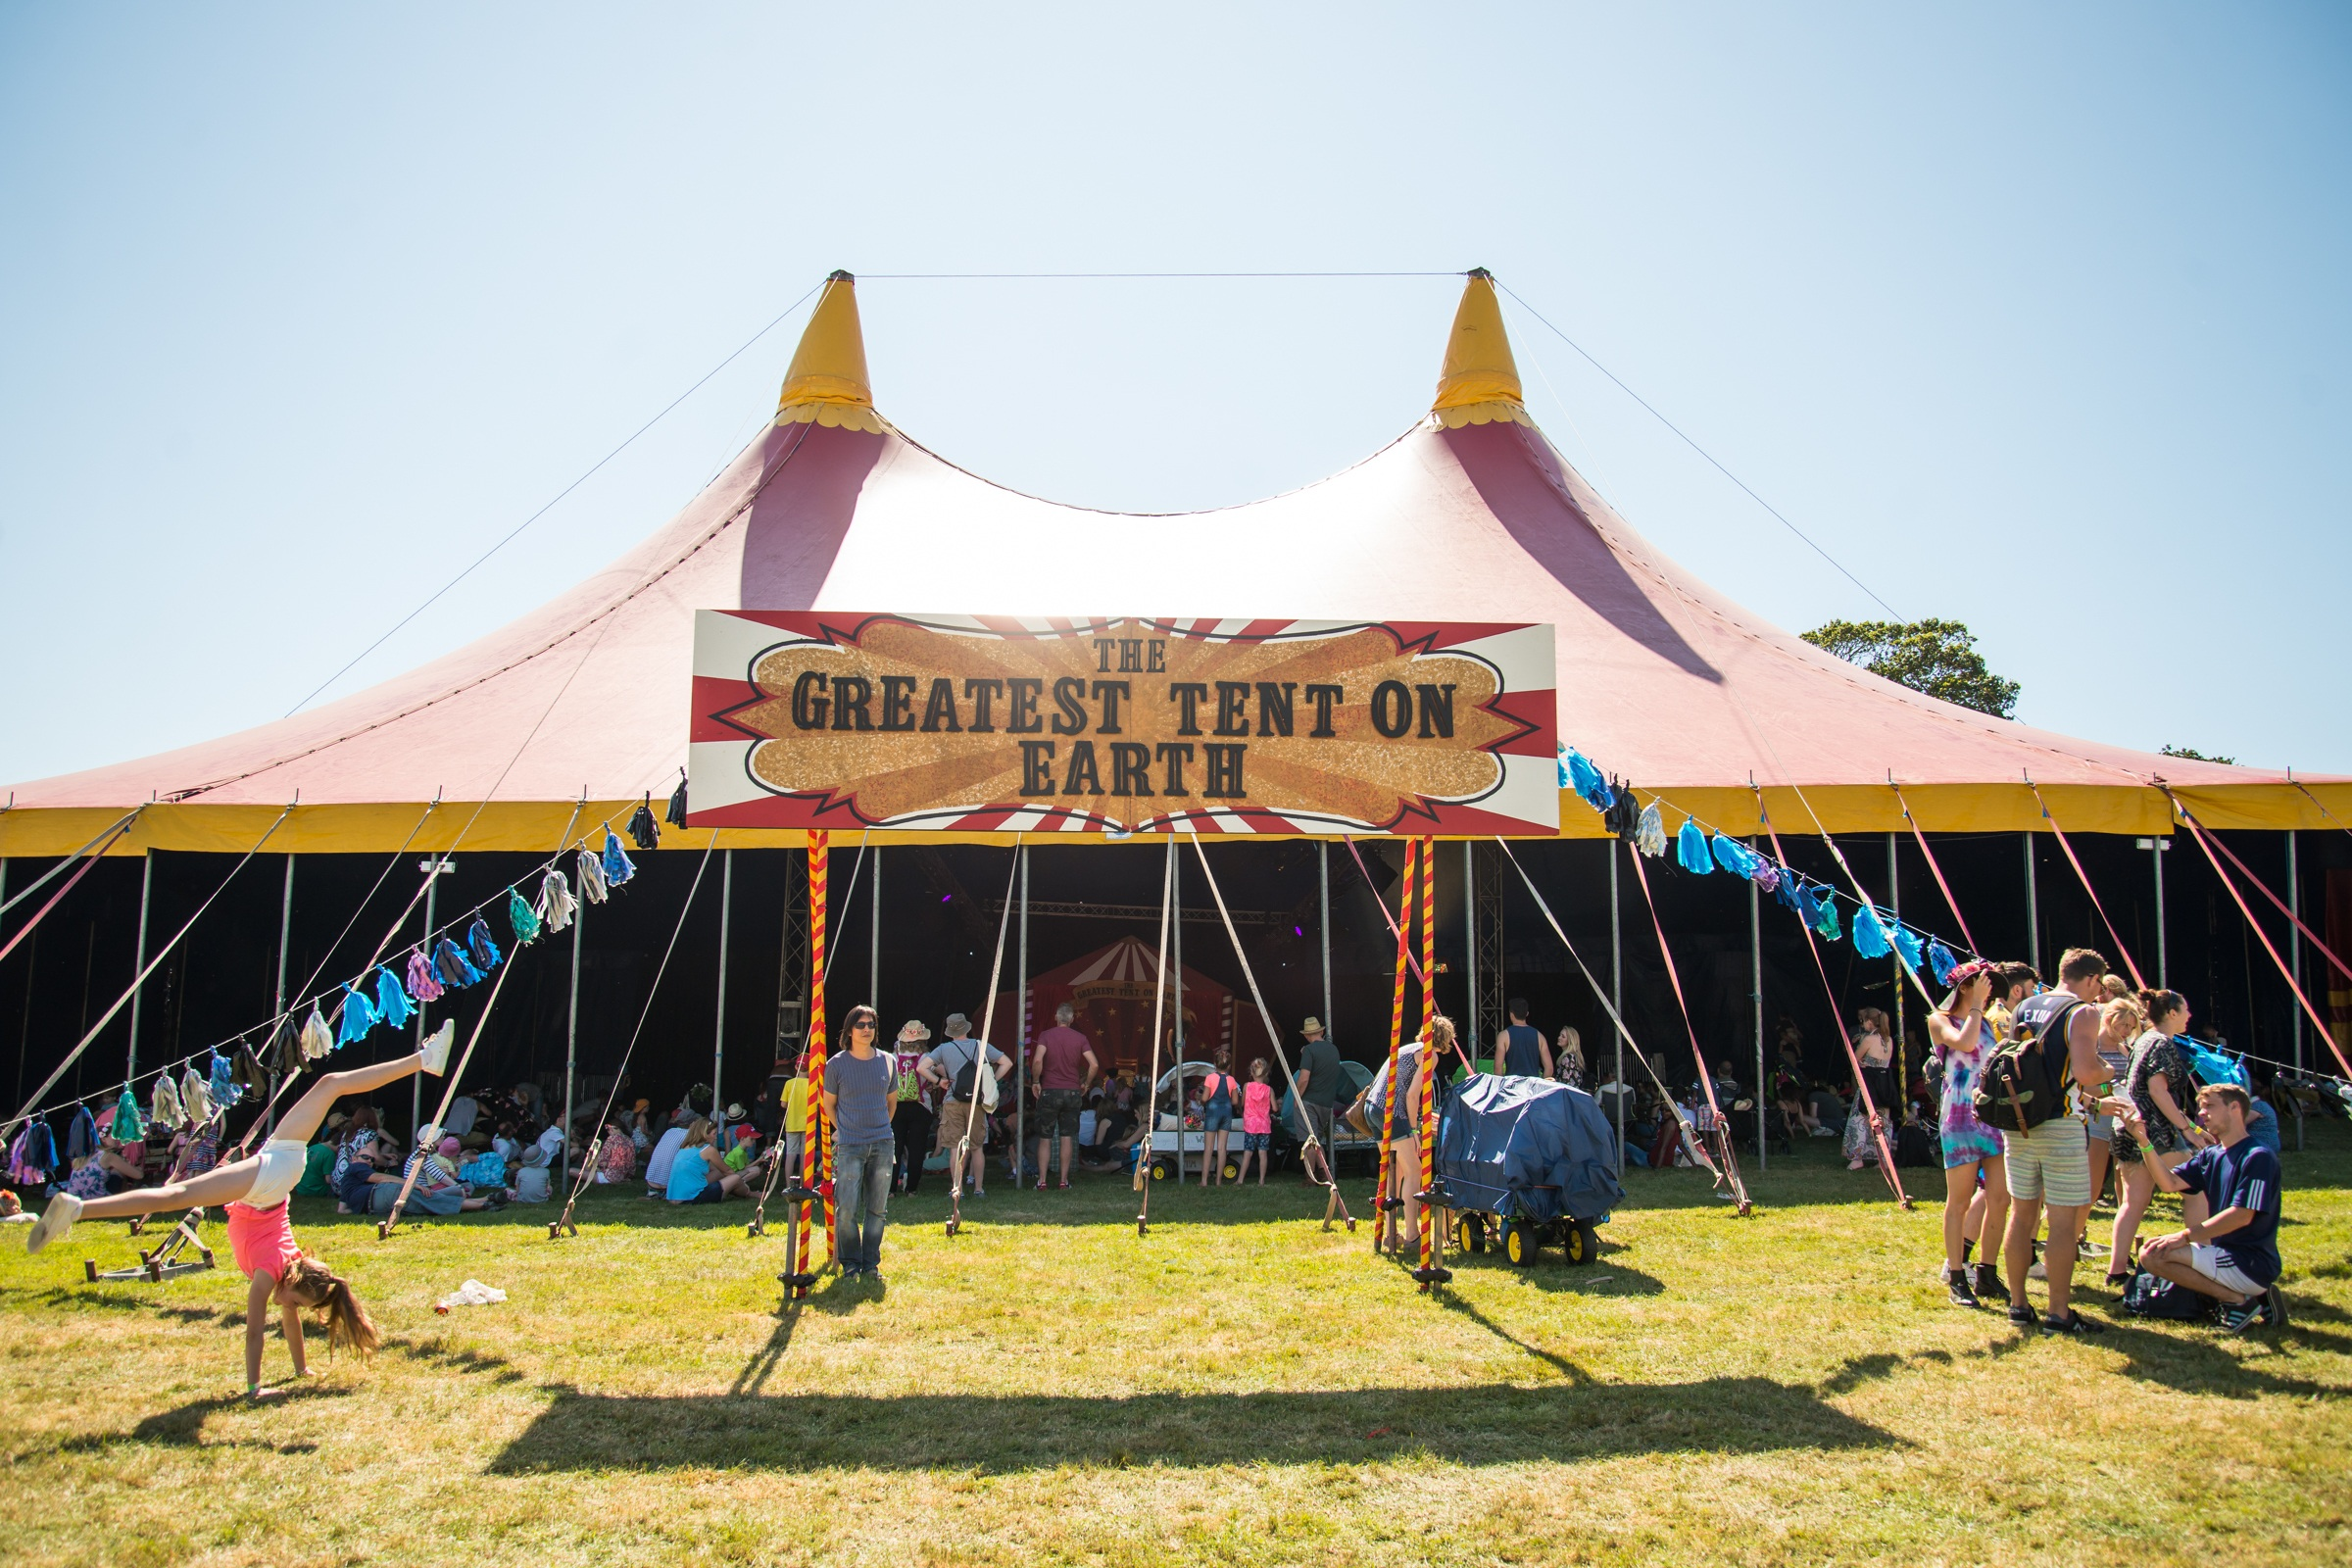 The Greatest Tent on Earth! image